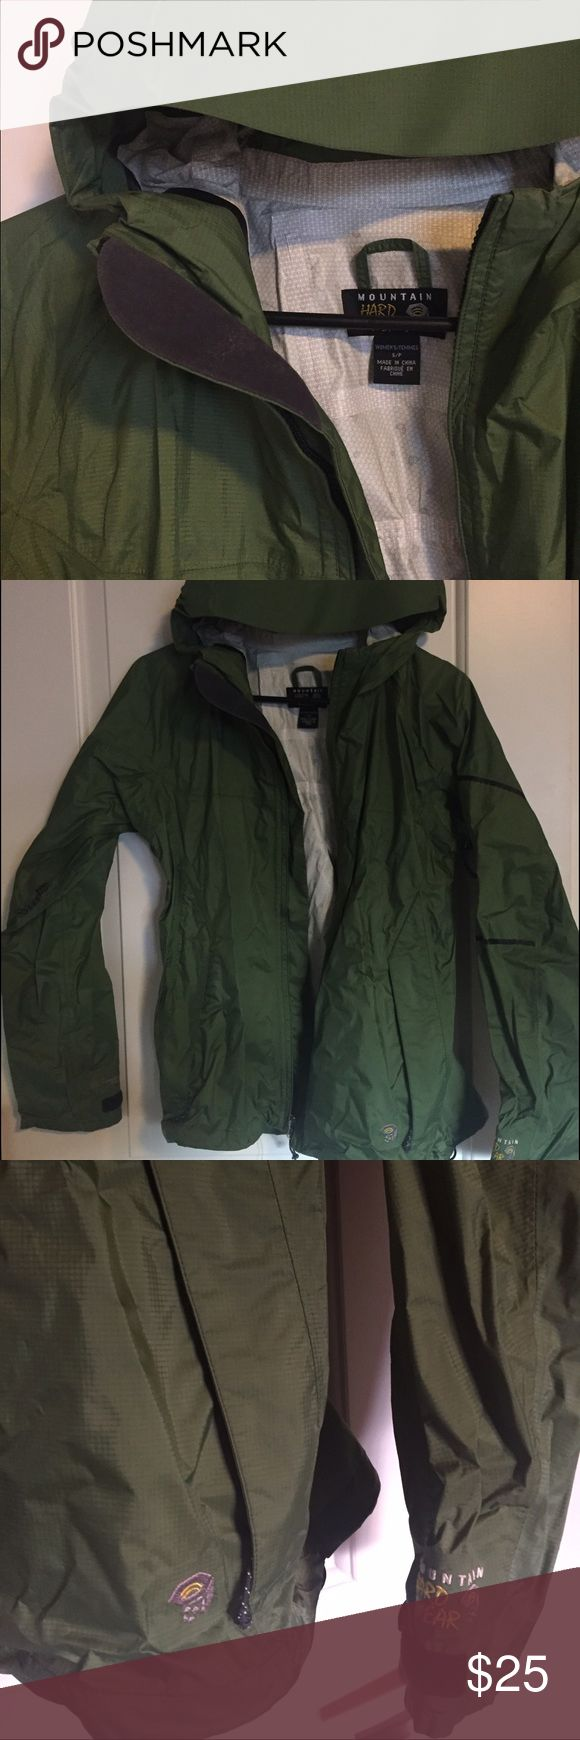 Mountain Hard Ware Rain Coat Women's, green, Mountain Hard Ware rain coat. Size small. Hardly ever worn. Excellent condition. Able to be folded up very tightly. Ventilation zippers under the arms, perfect for hiking or outdoor activity. Mountain Hard Wear Jackets & Coats Utility Jackets